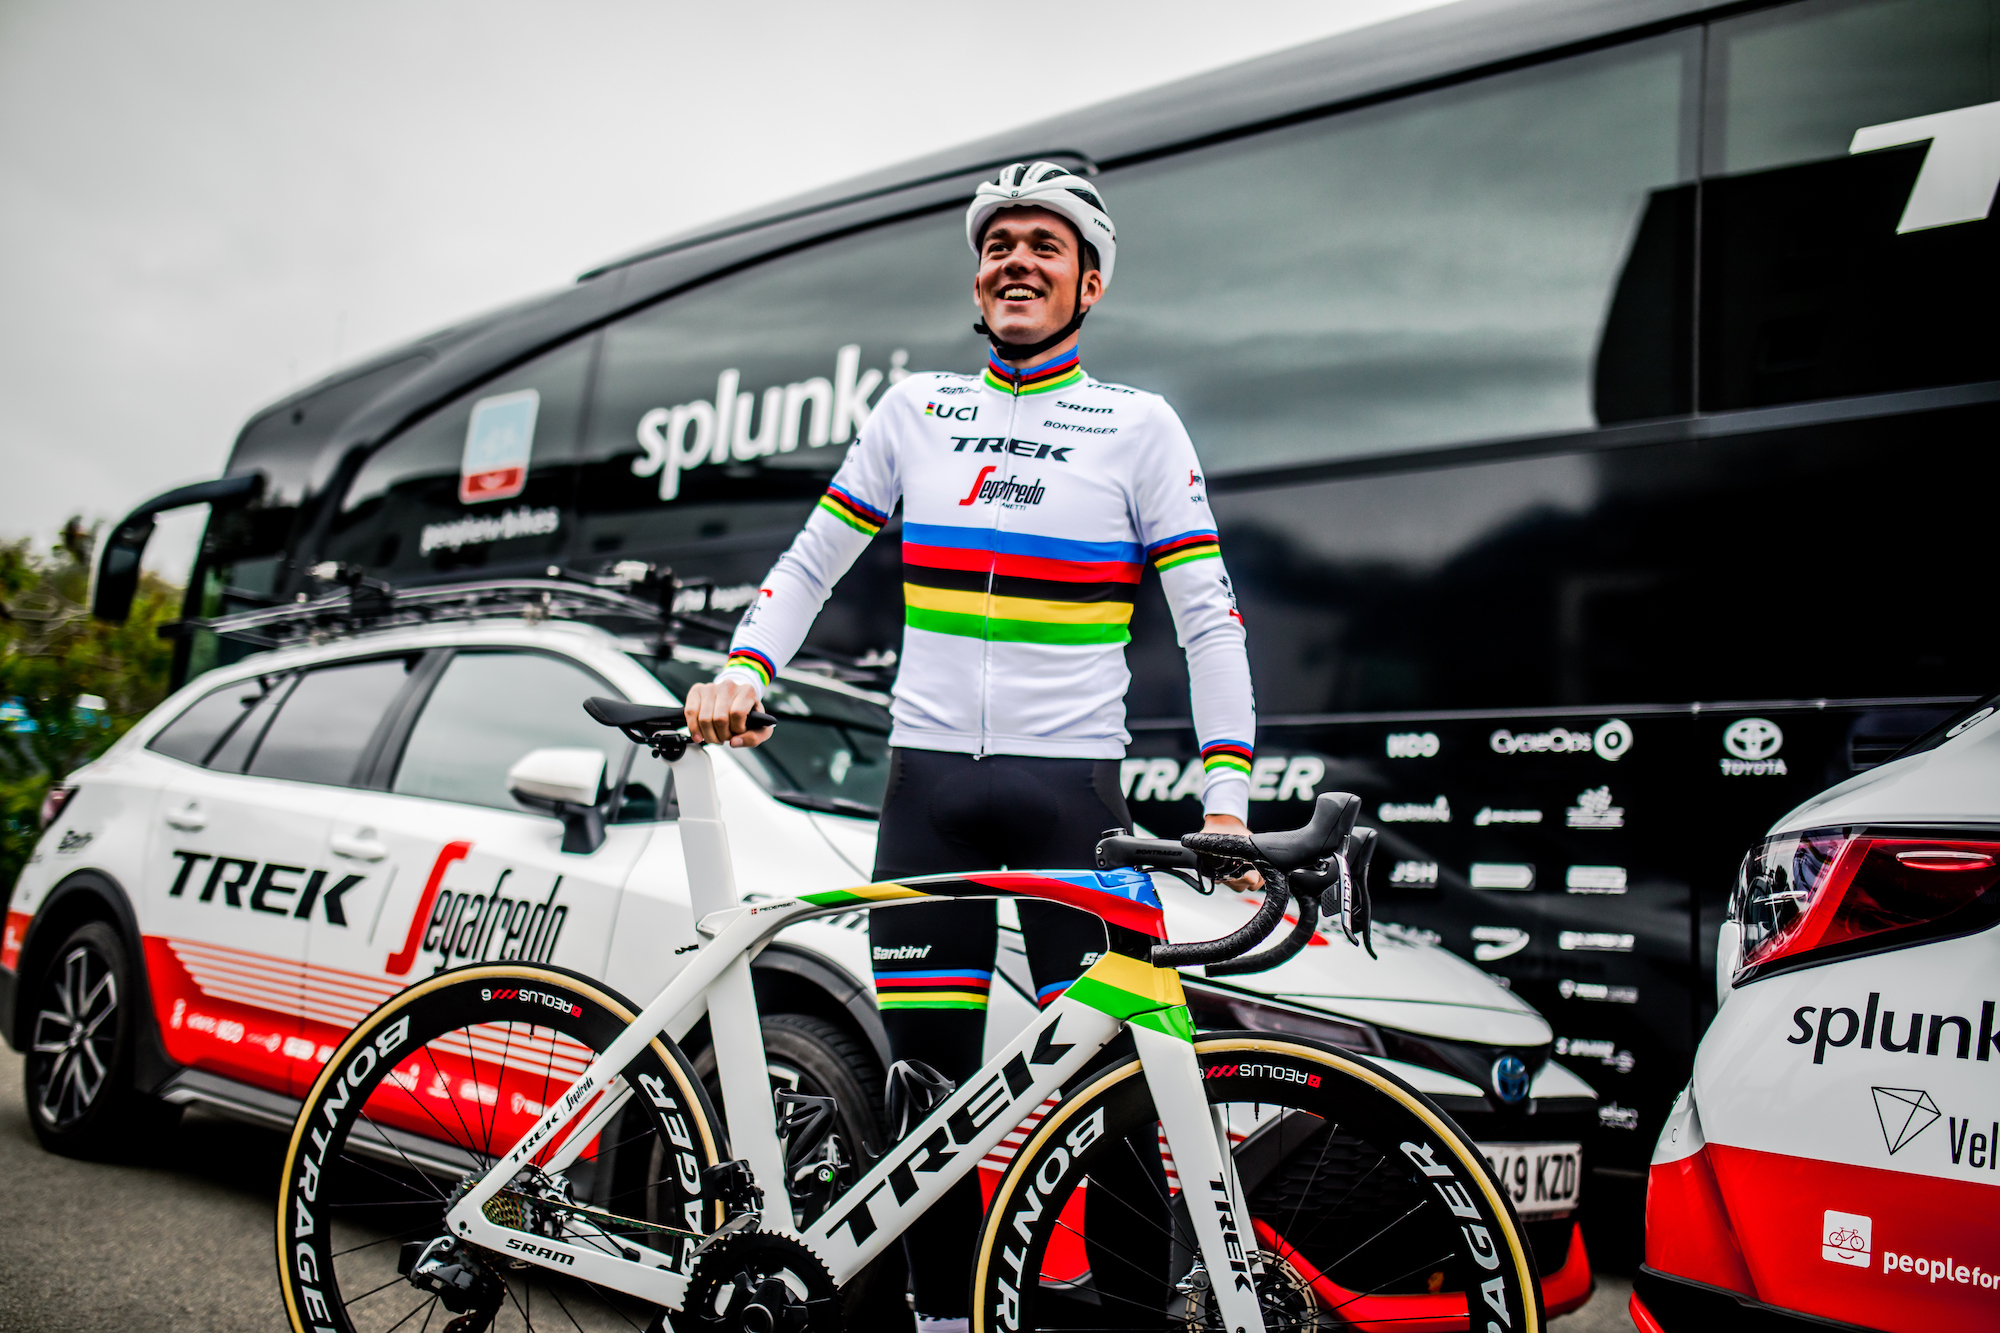 Mads Pedersen unveils rainbow jersey and bike at first race since becoming World Champion